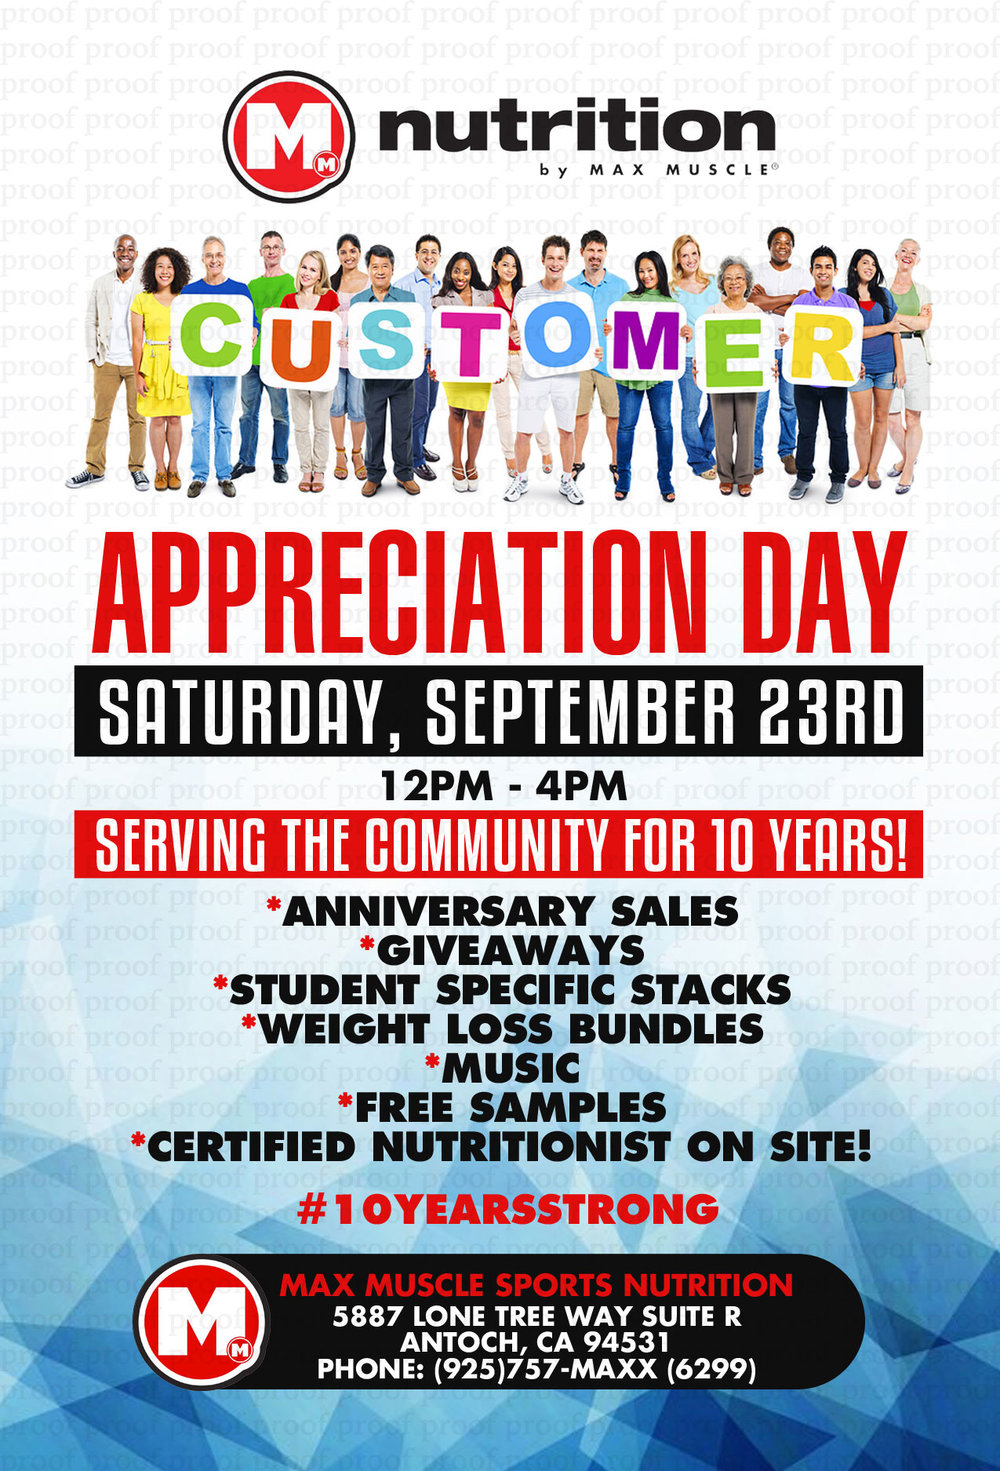 10 Years Strong! - It's been an honor to serve this community for 10 years! Come by 5887 Lone Tree Way in Antioch for our customer appreciation day on Saturday, September 23rd. We kick things off at 12 PM with music, sales, giveaways, and our certified nutritionists will be on site.Hope to see you there!